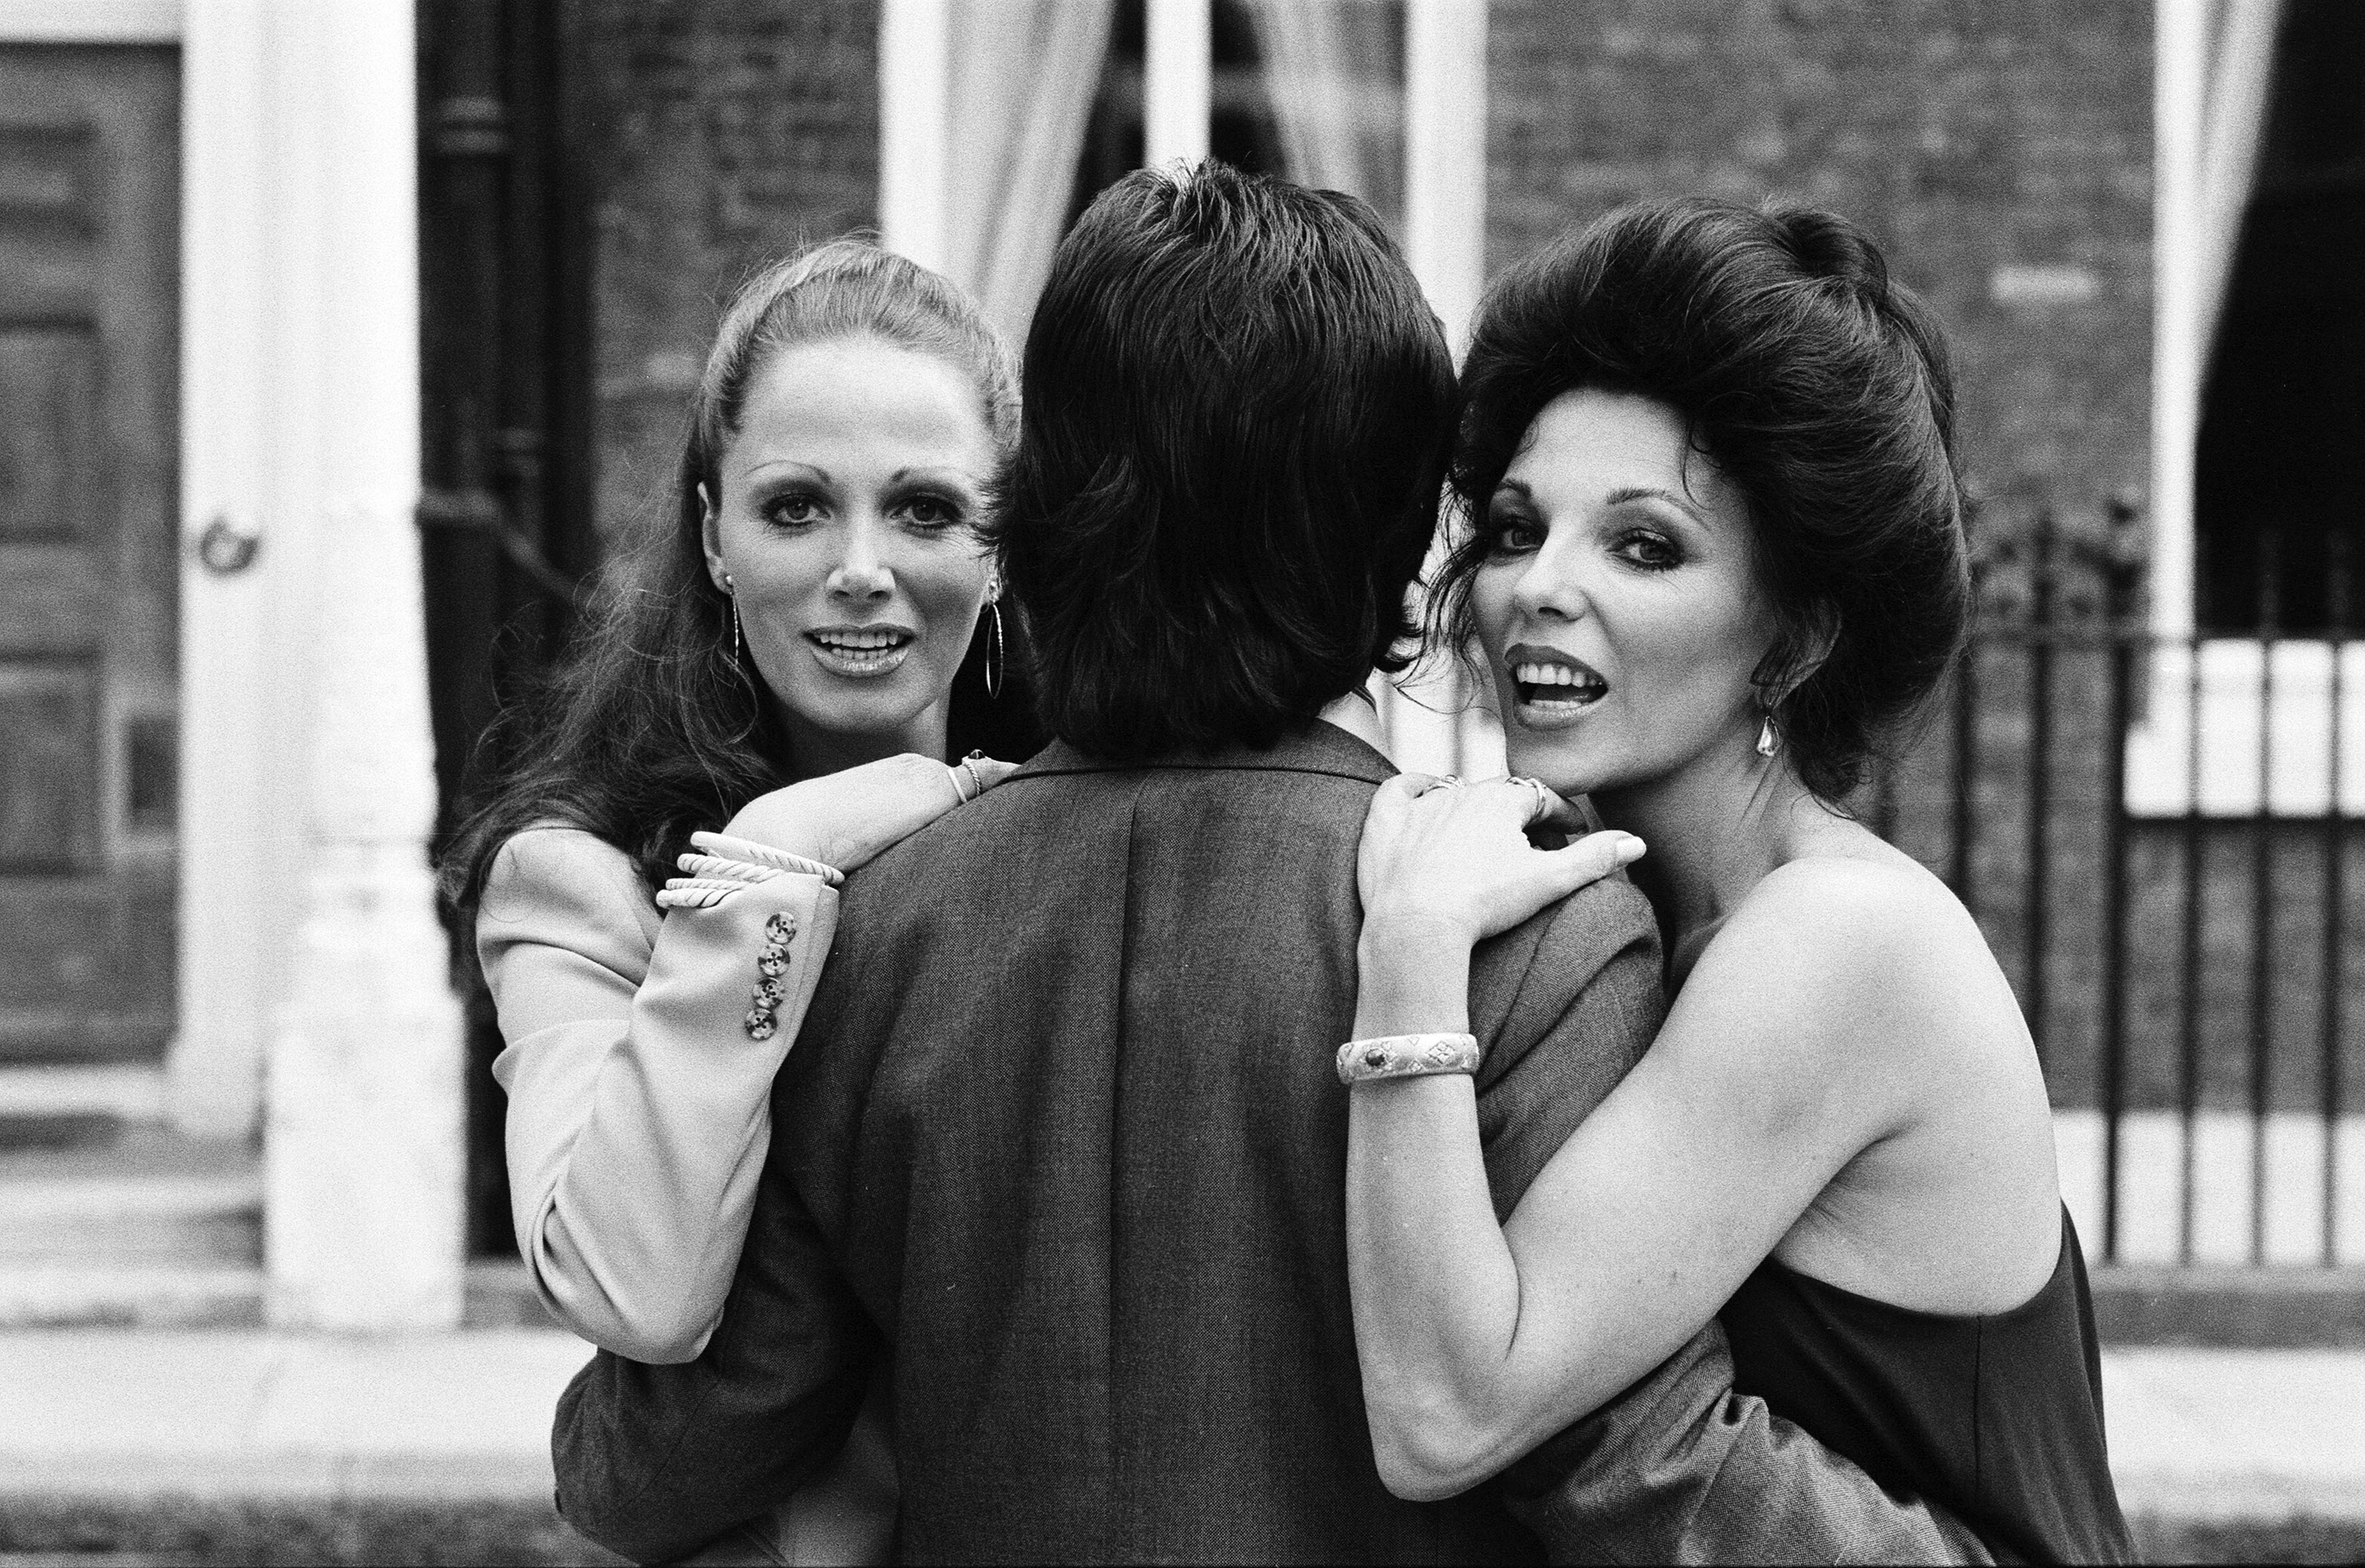 Jackie Collins and sister Joan joineed forces to promote films The Stud and The Bitch in the 1970s.